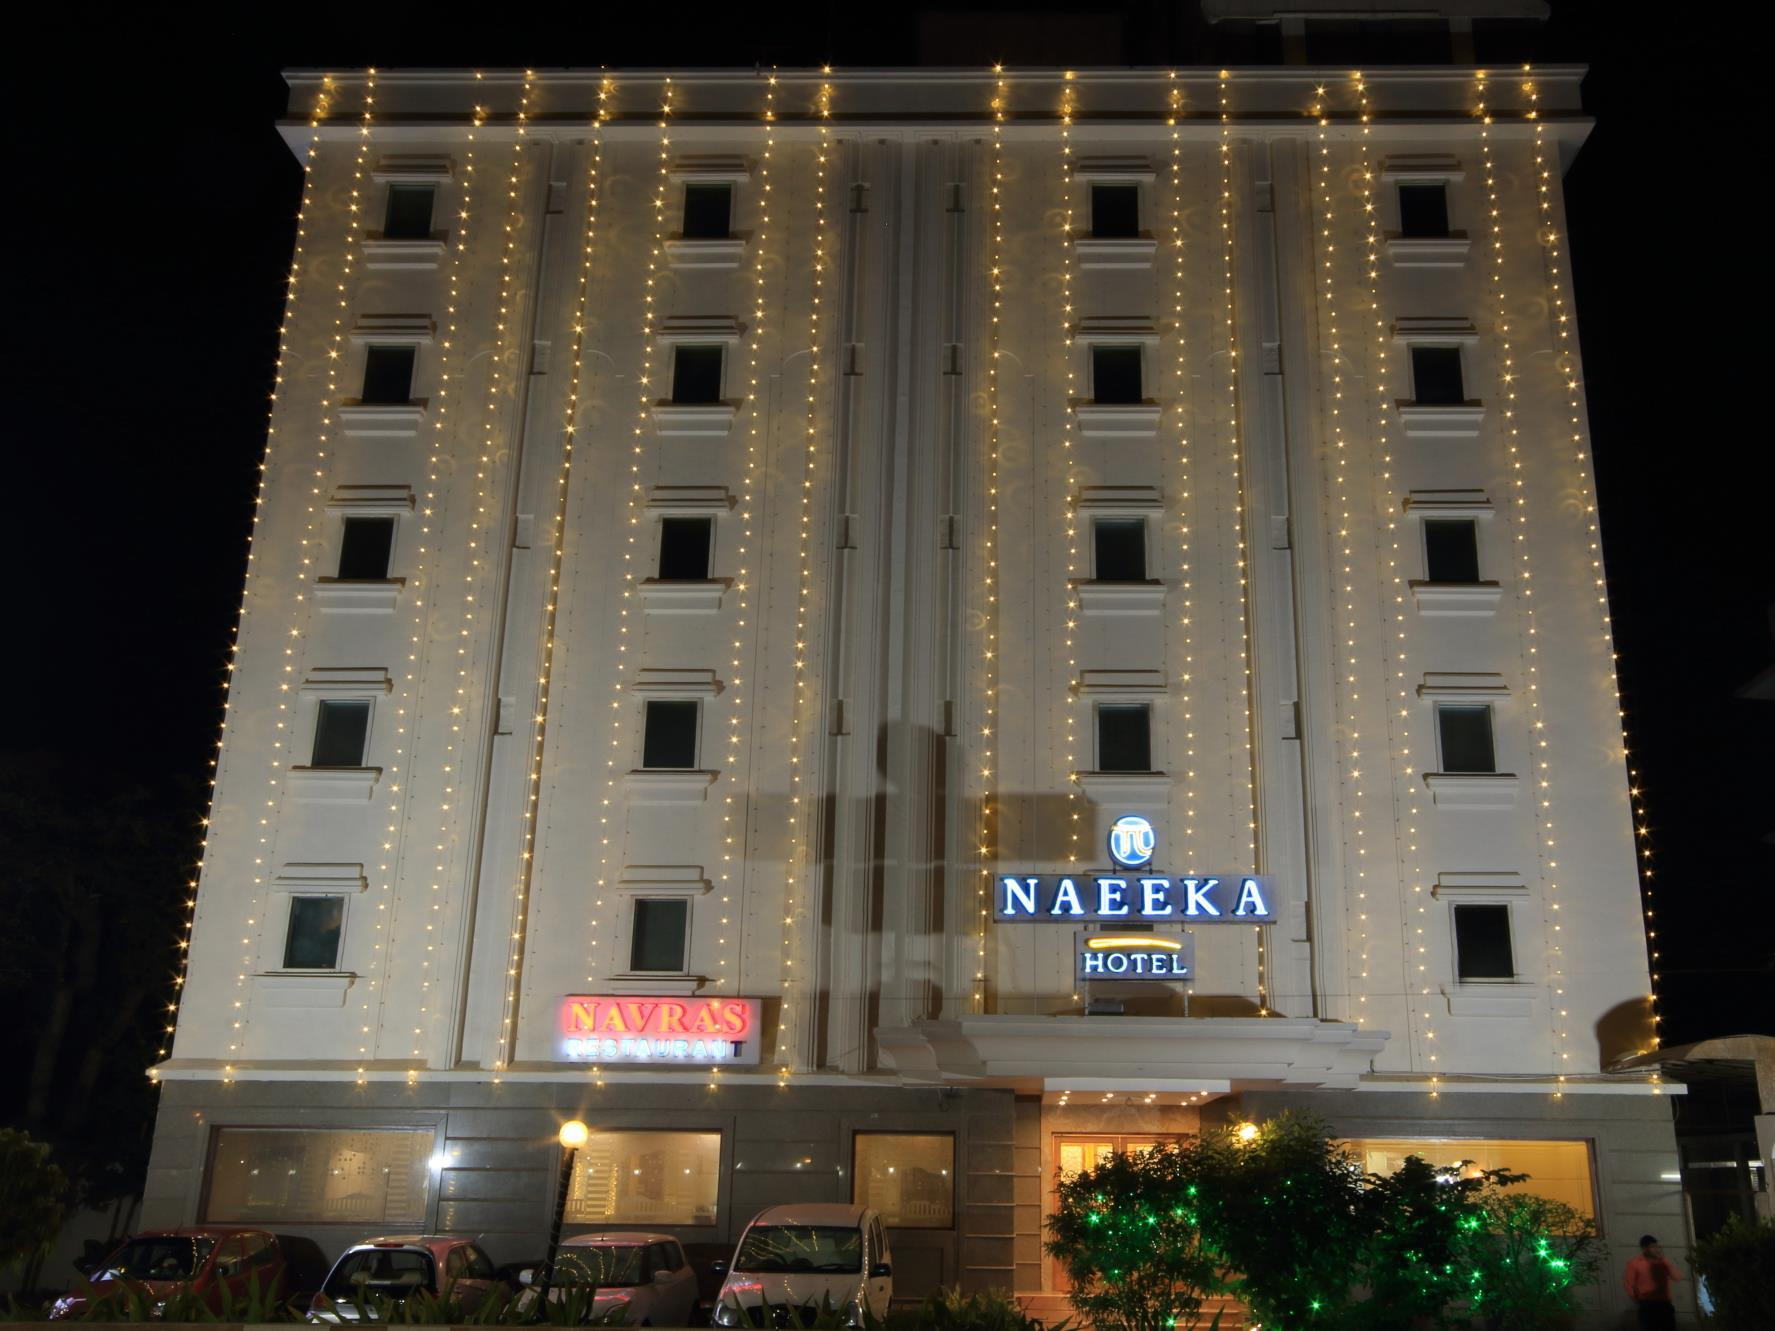 Naeeka Hotel - Hotel and accommodation in India in Ahmedabad